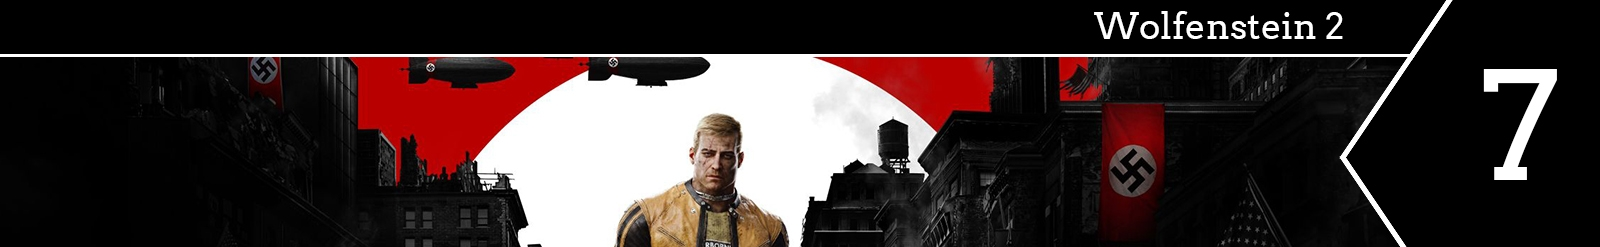 GPN Top 2017: Wolfenstein 2